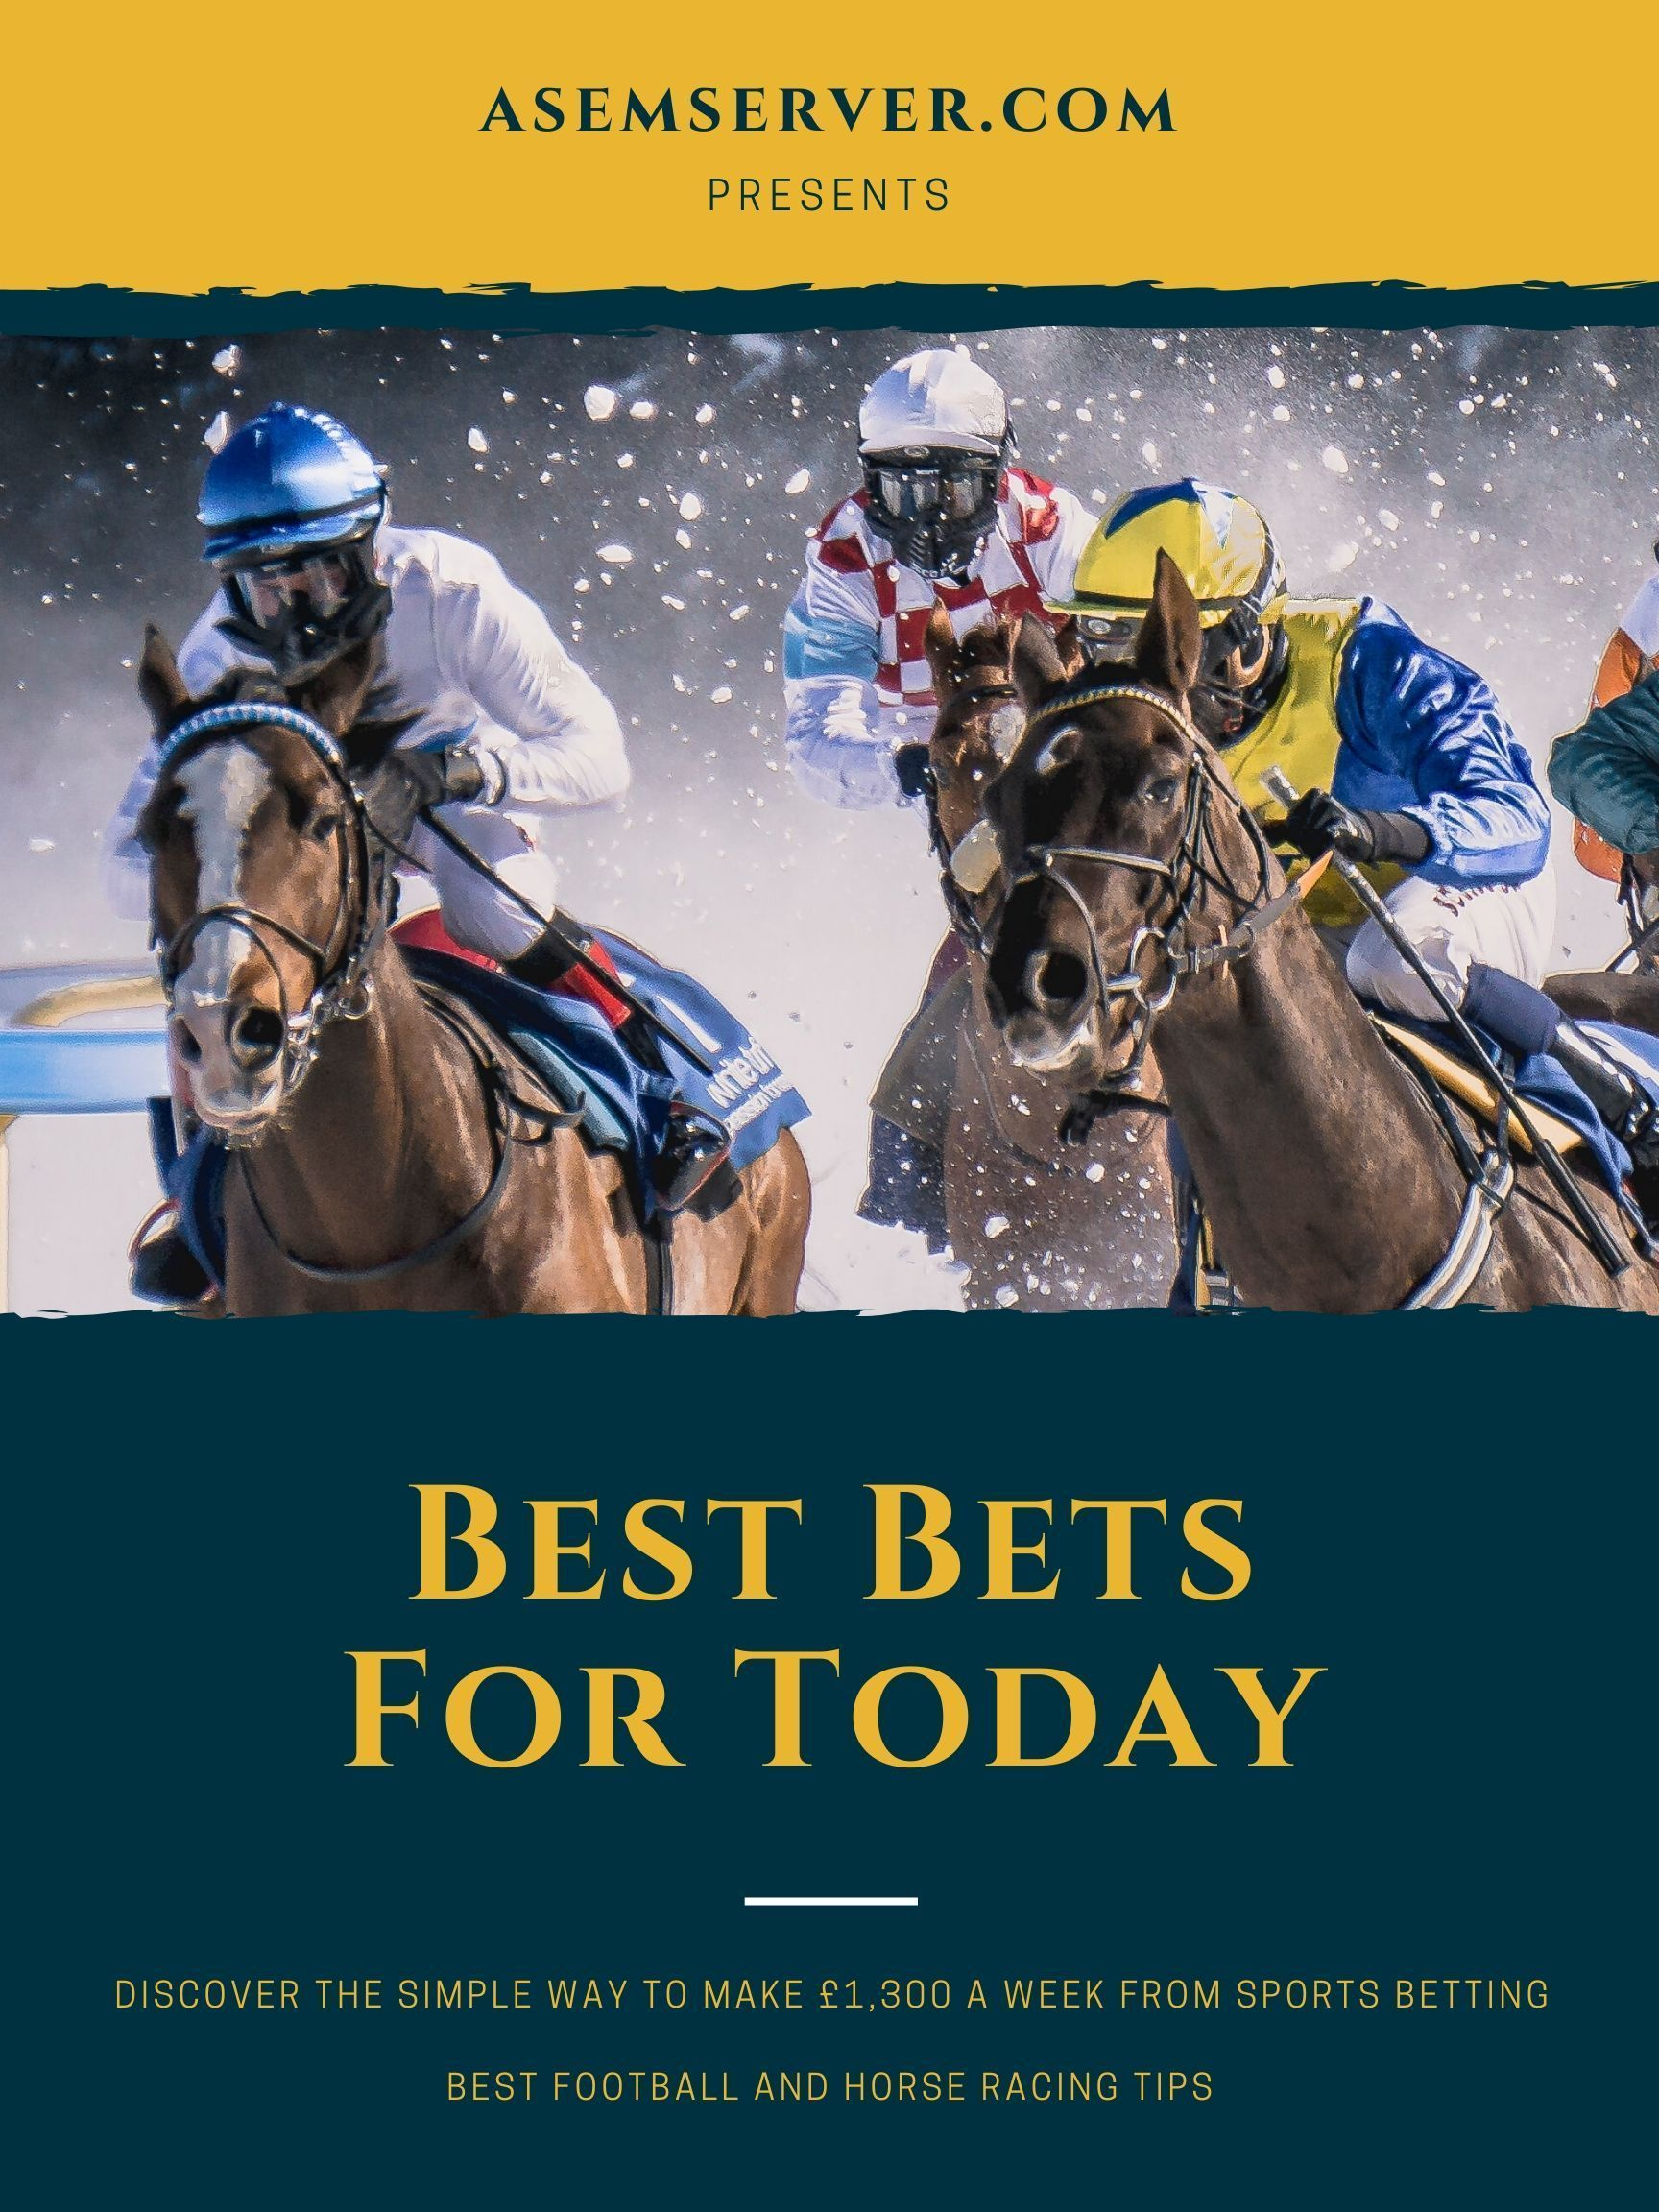 Pin by Nadine Hardin on betting tips in 2020 Horse